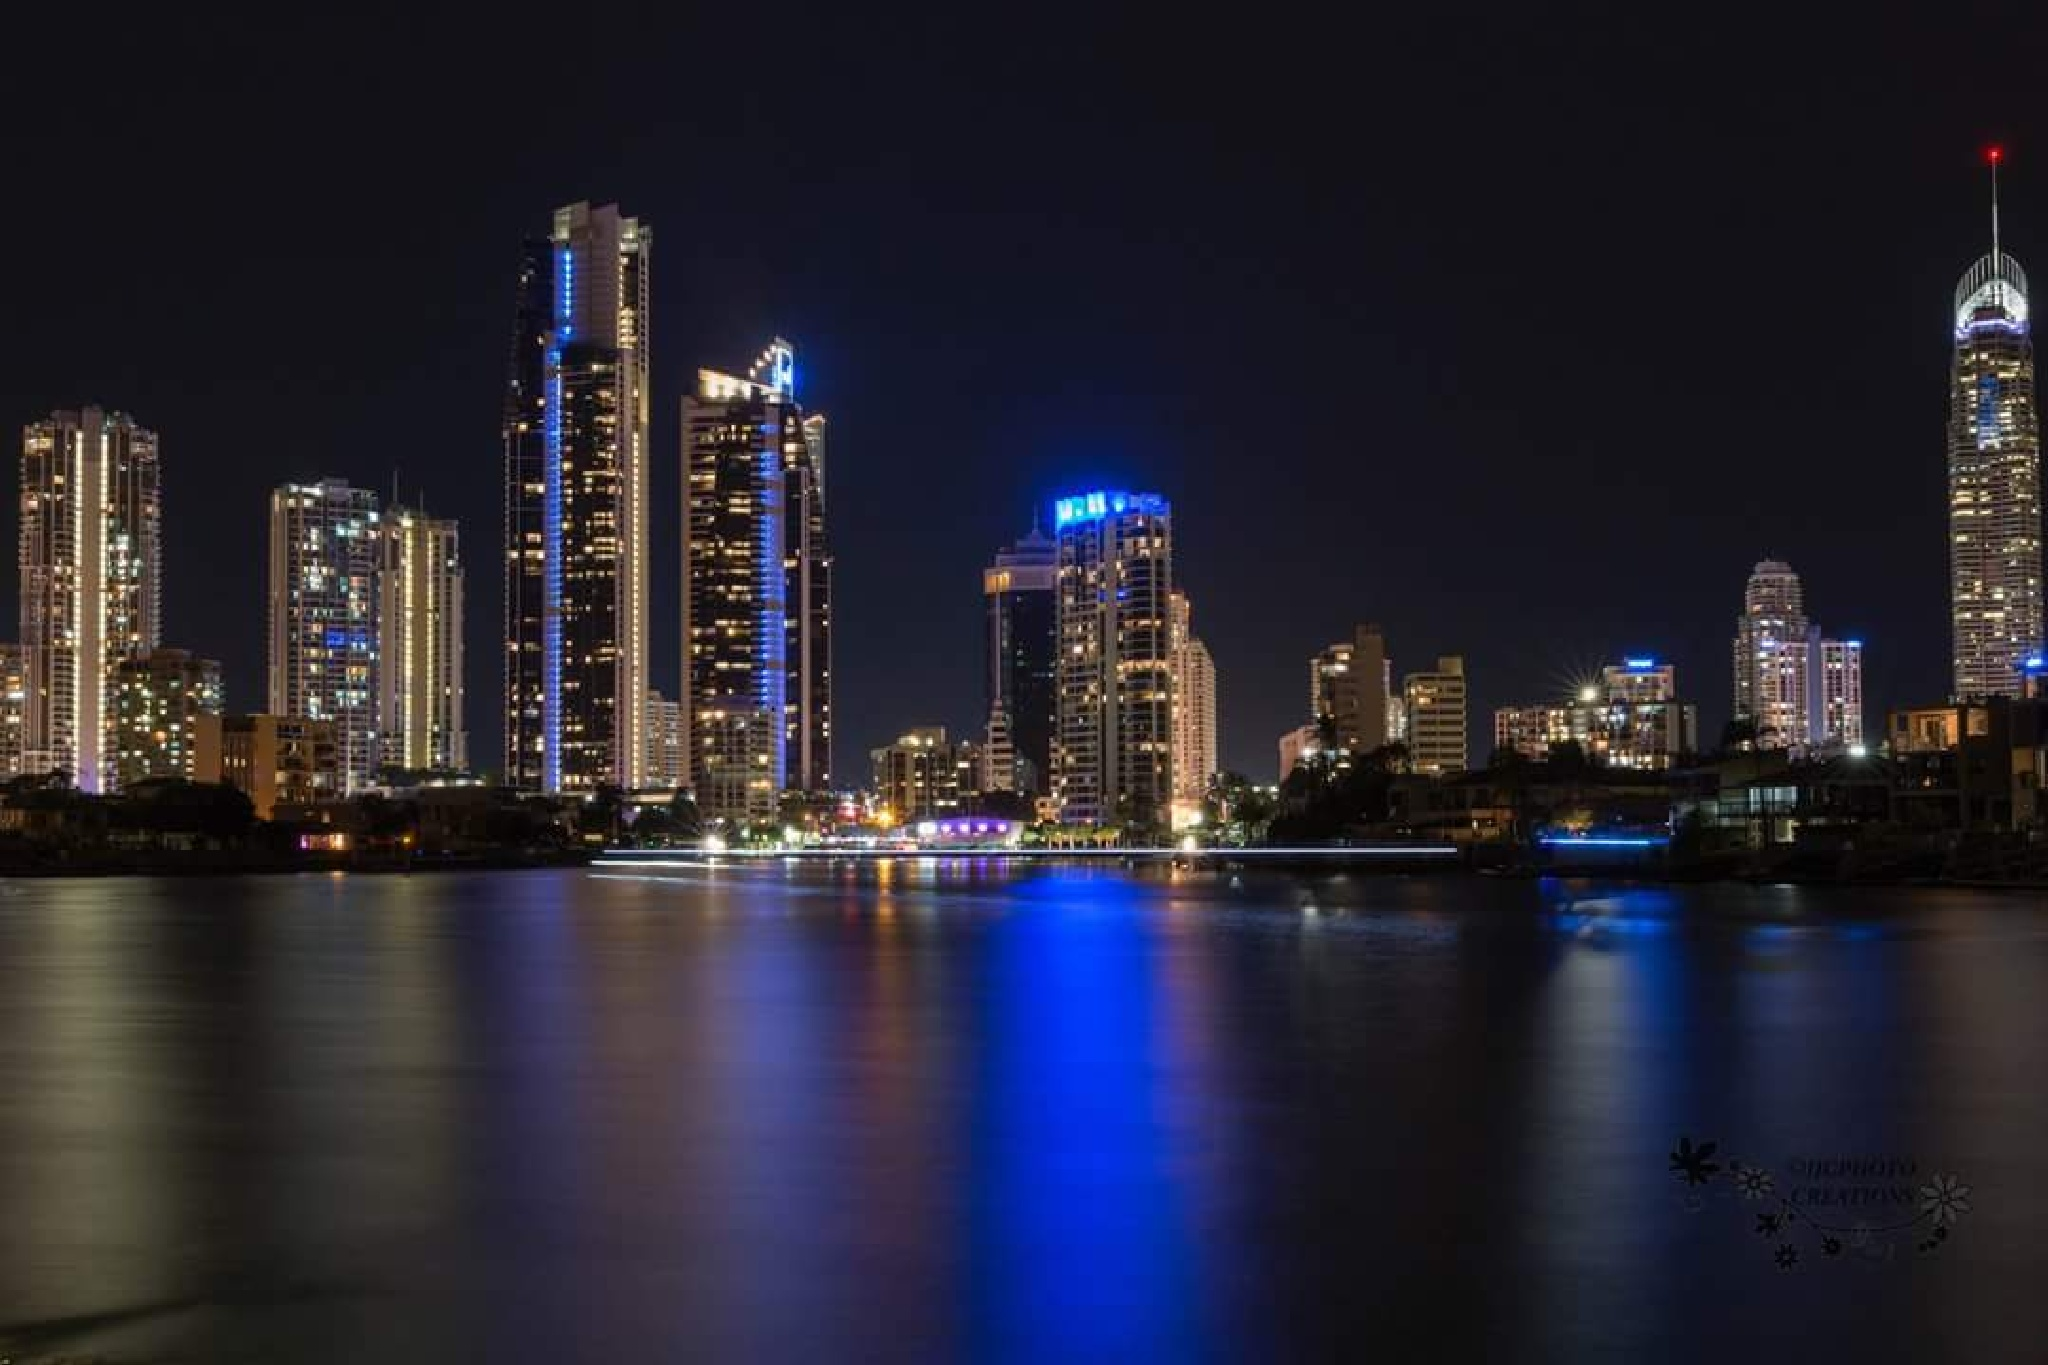 Quick shot taken last night of Surfers Paradise by LeanneT